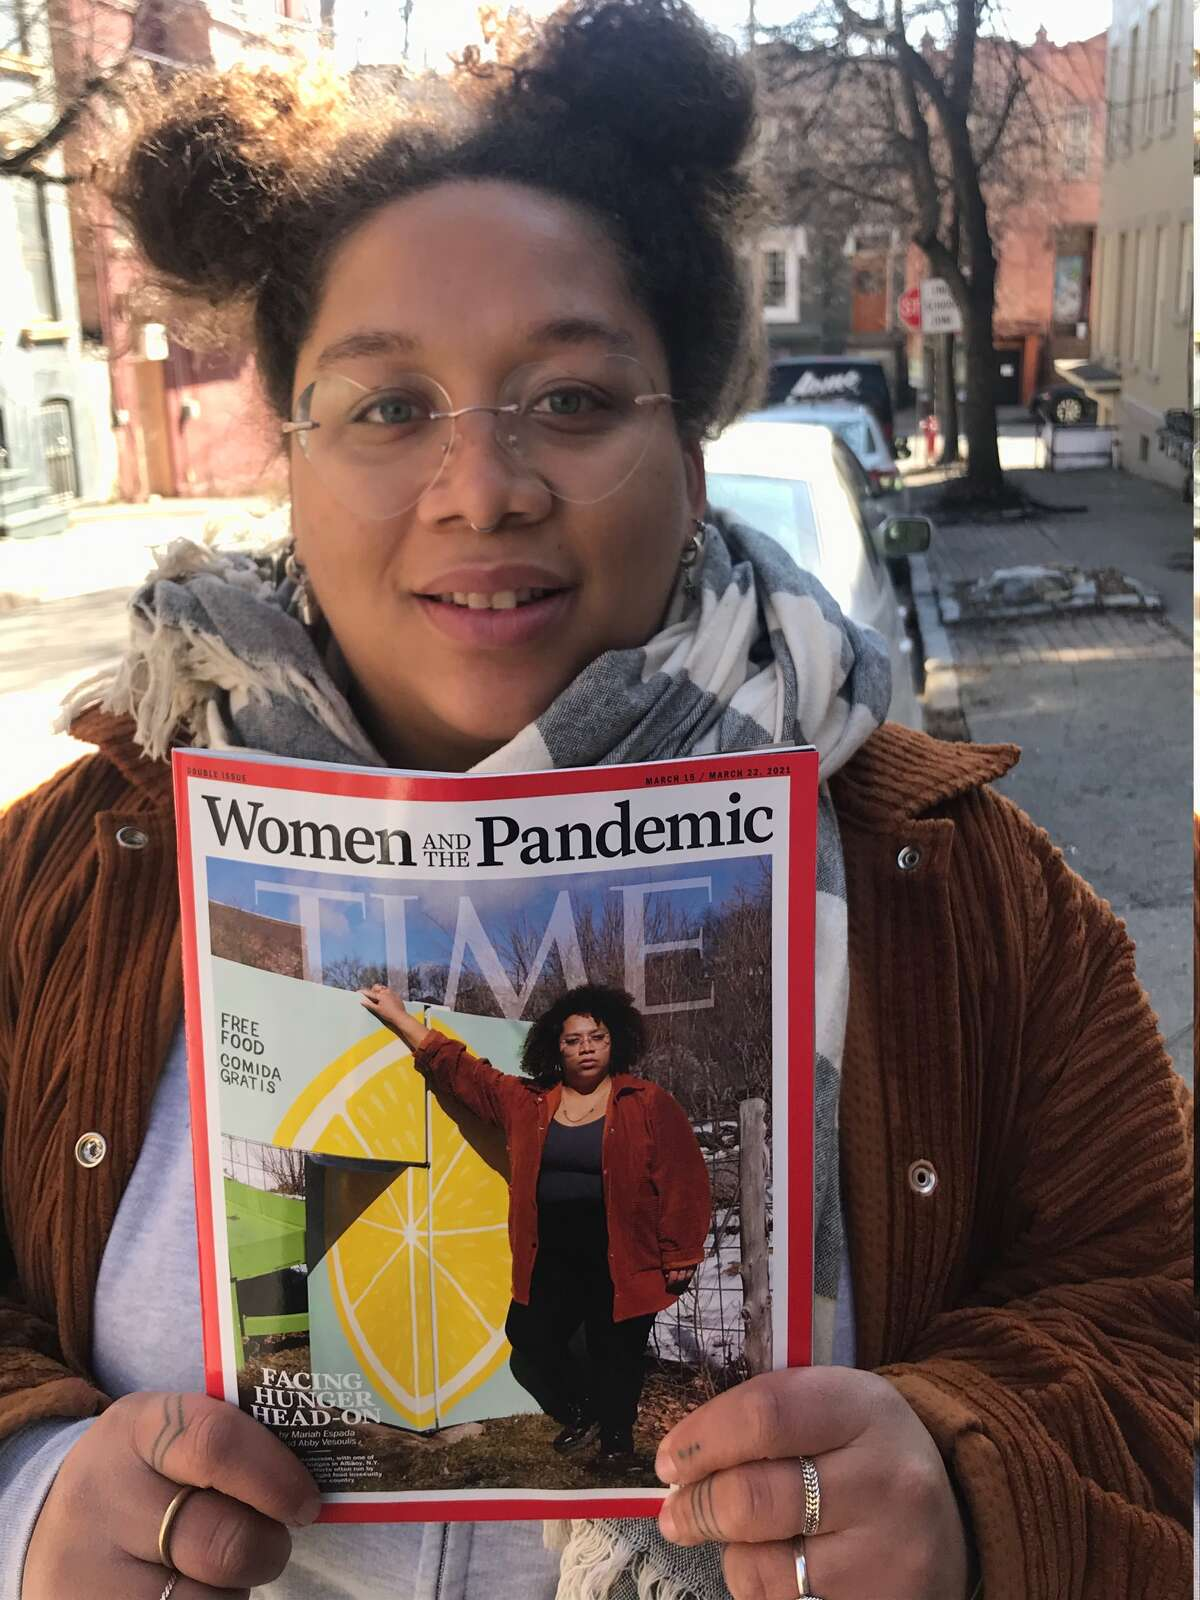 Jammella Anderson, founder of the Free Food Fridge Albany project, was featured on the cover of Time magazine. (Paul Grondahl /Special to the Times Union)